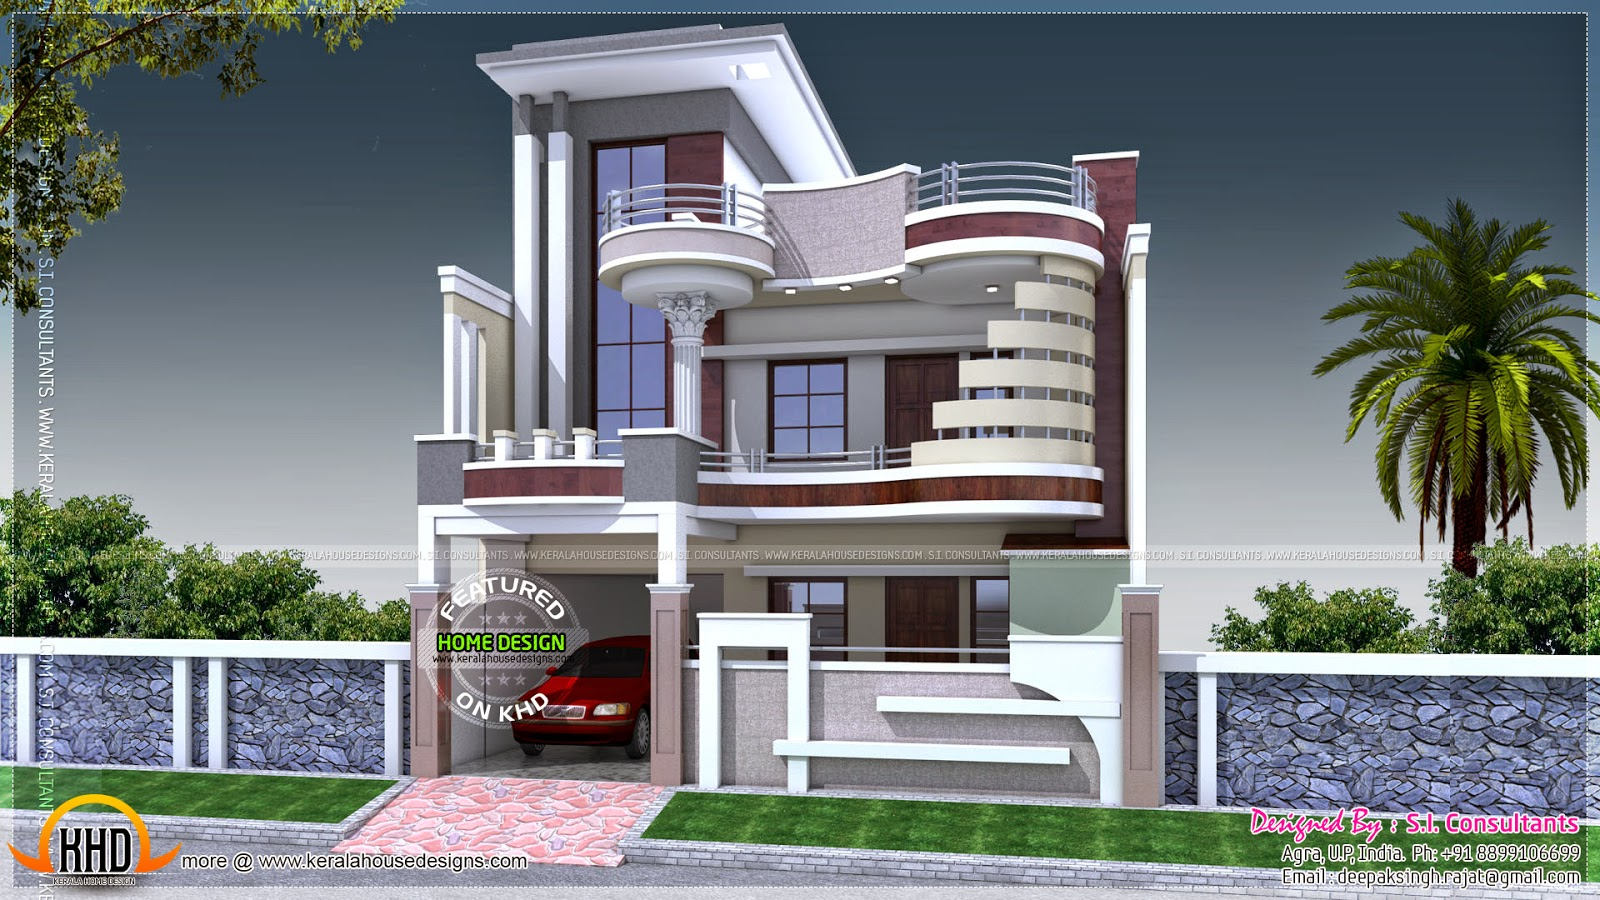 Modern decorative house kerala home design and floor plans for 2 bedroom house designs in india